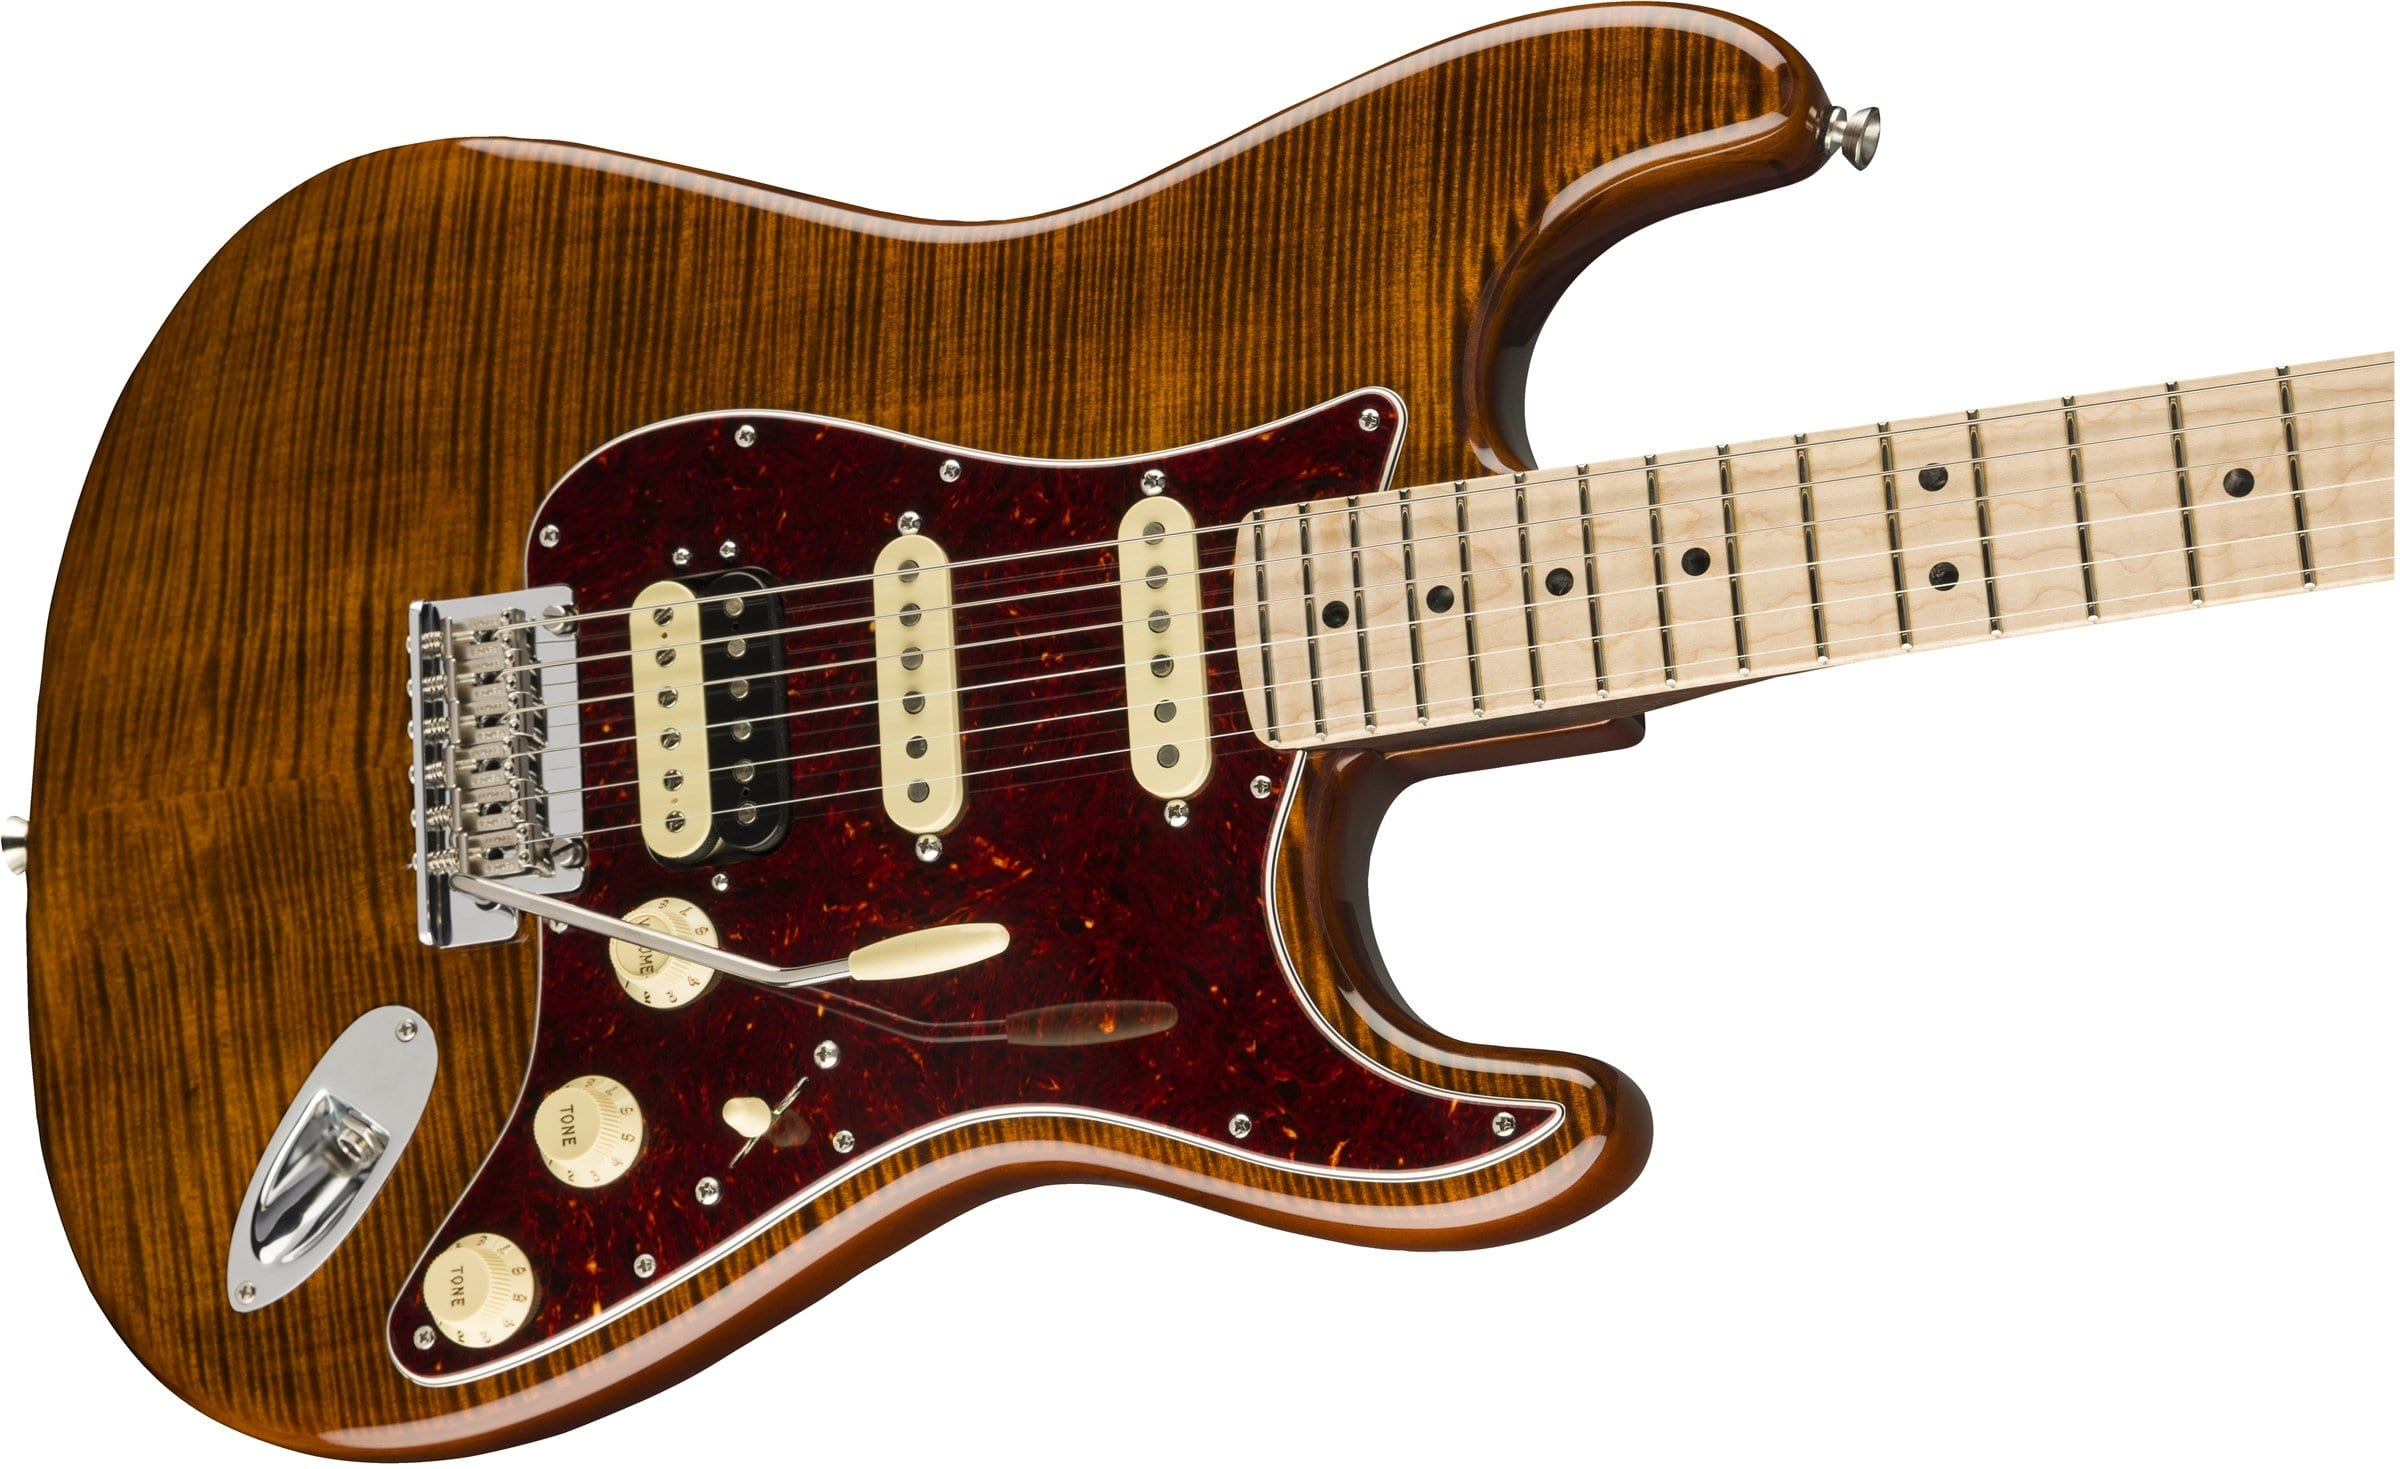 Fender released their new Flame Maple Top Stratocaster.